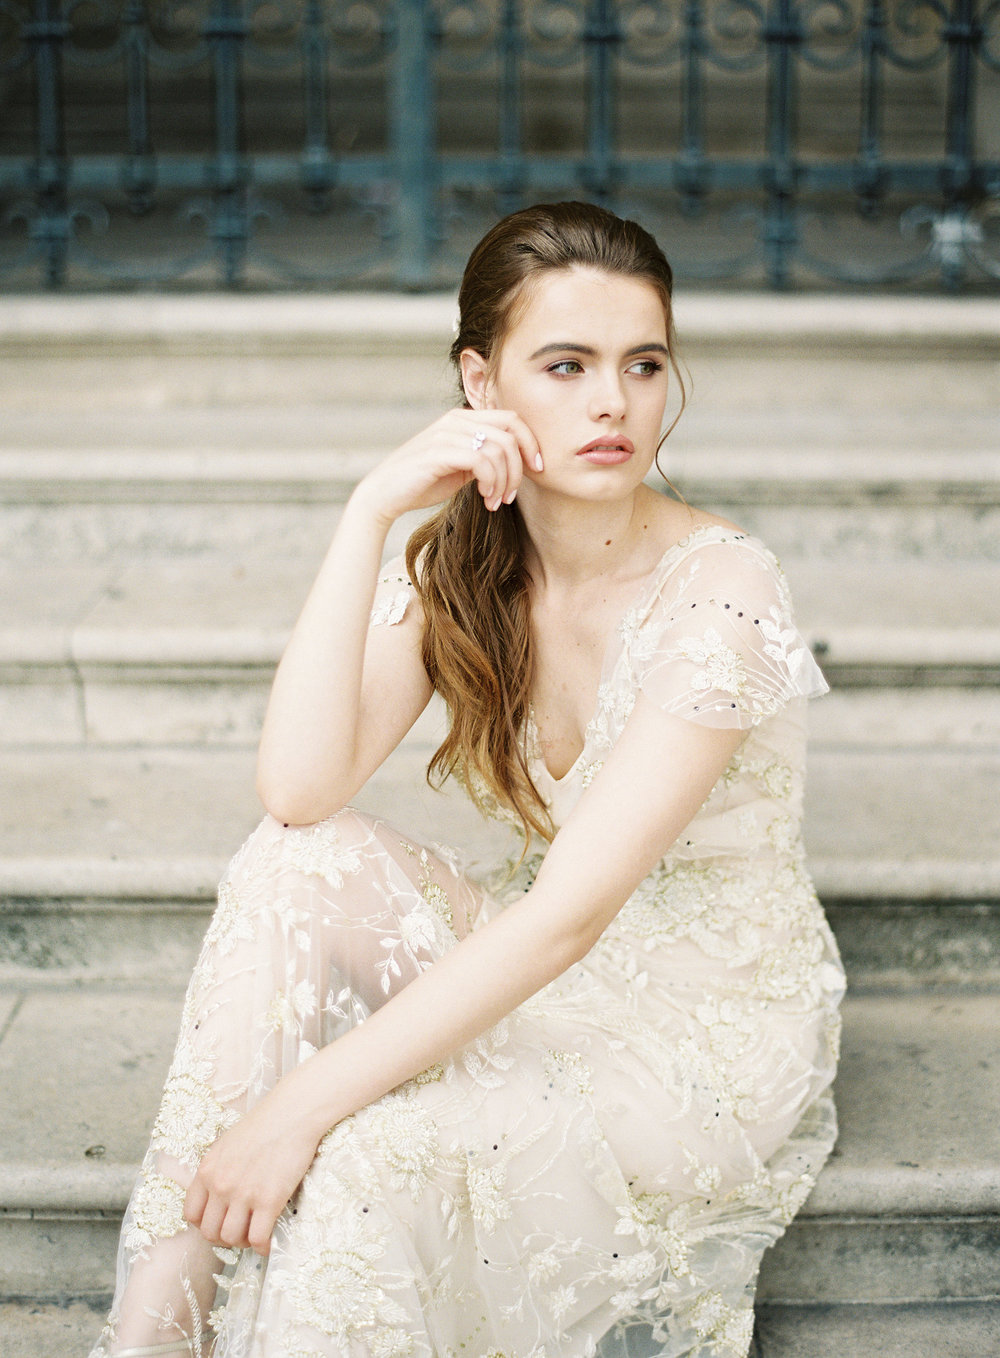 Paris Bride | Gold wedding gown | Ethereal Bride | Shop Gossamer | Bella Belle Shoes | Paris wedding photographer | Paris film photographer | France wedding photographer | France film photographer | Whiskers and Willow Photography